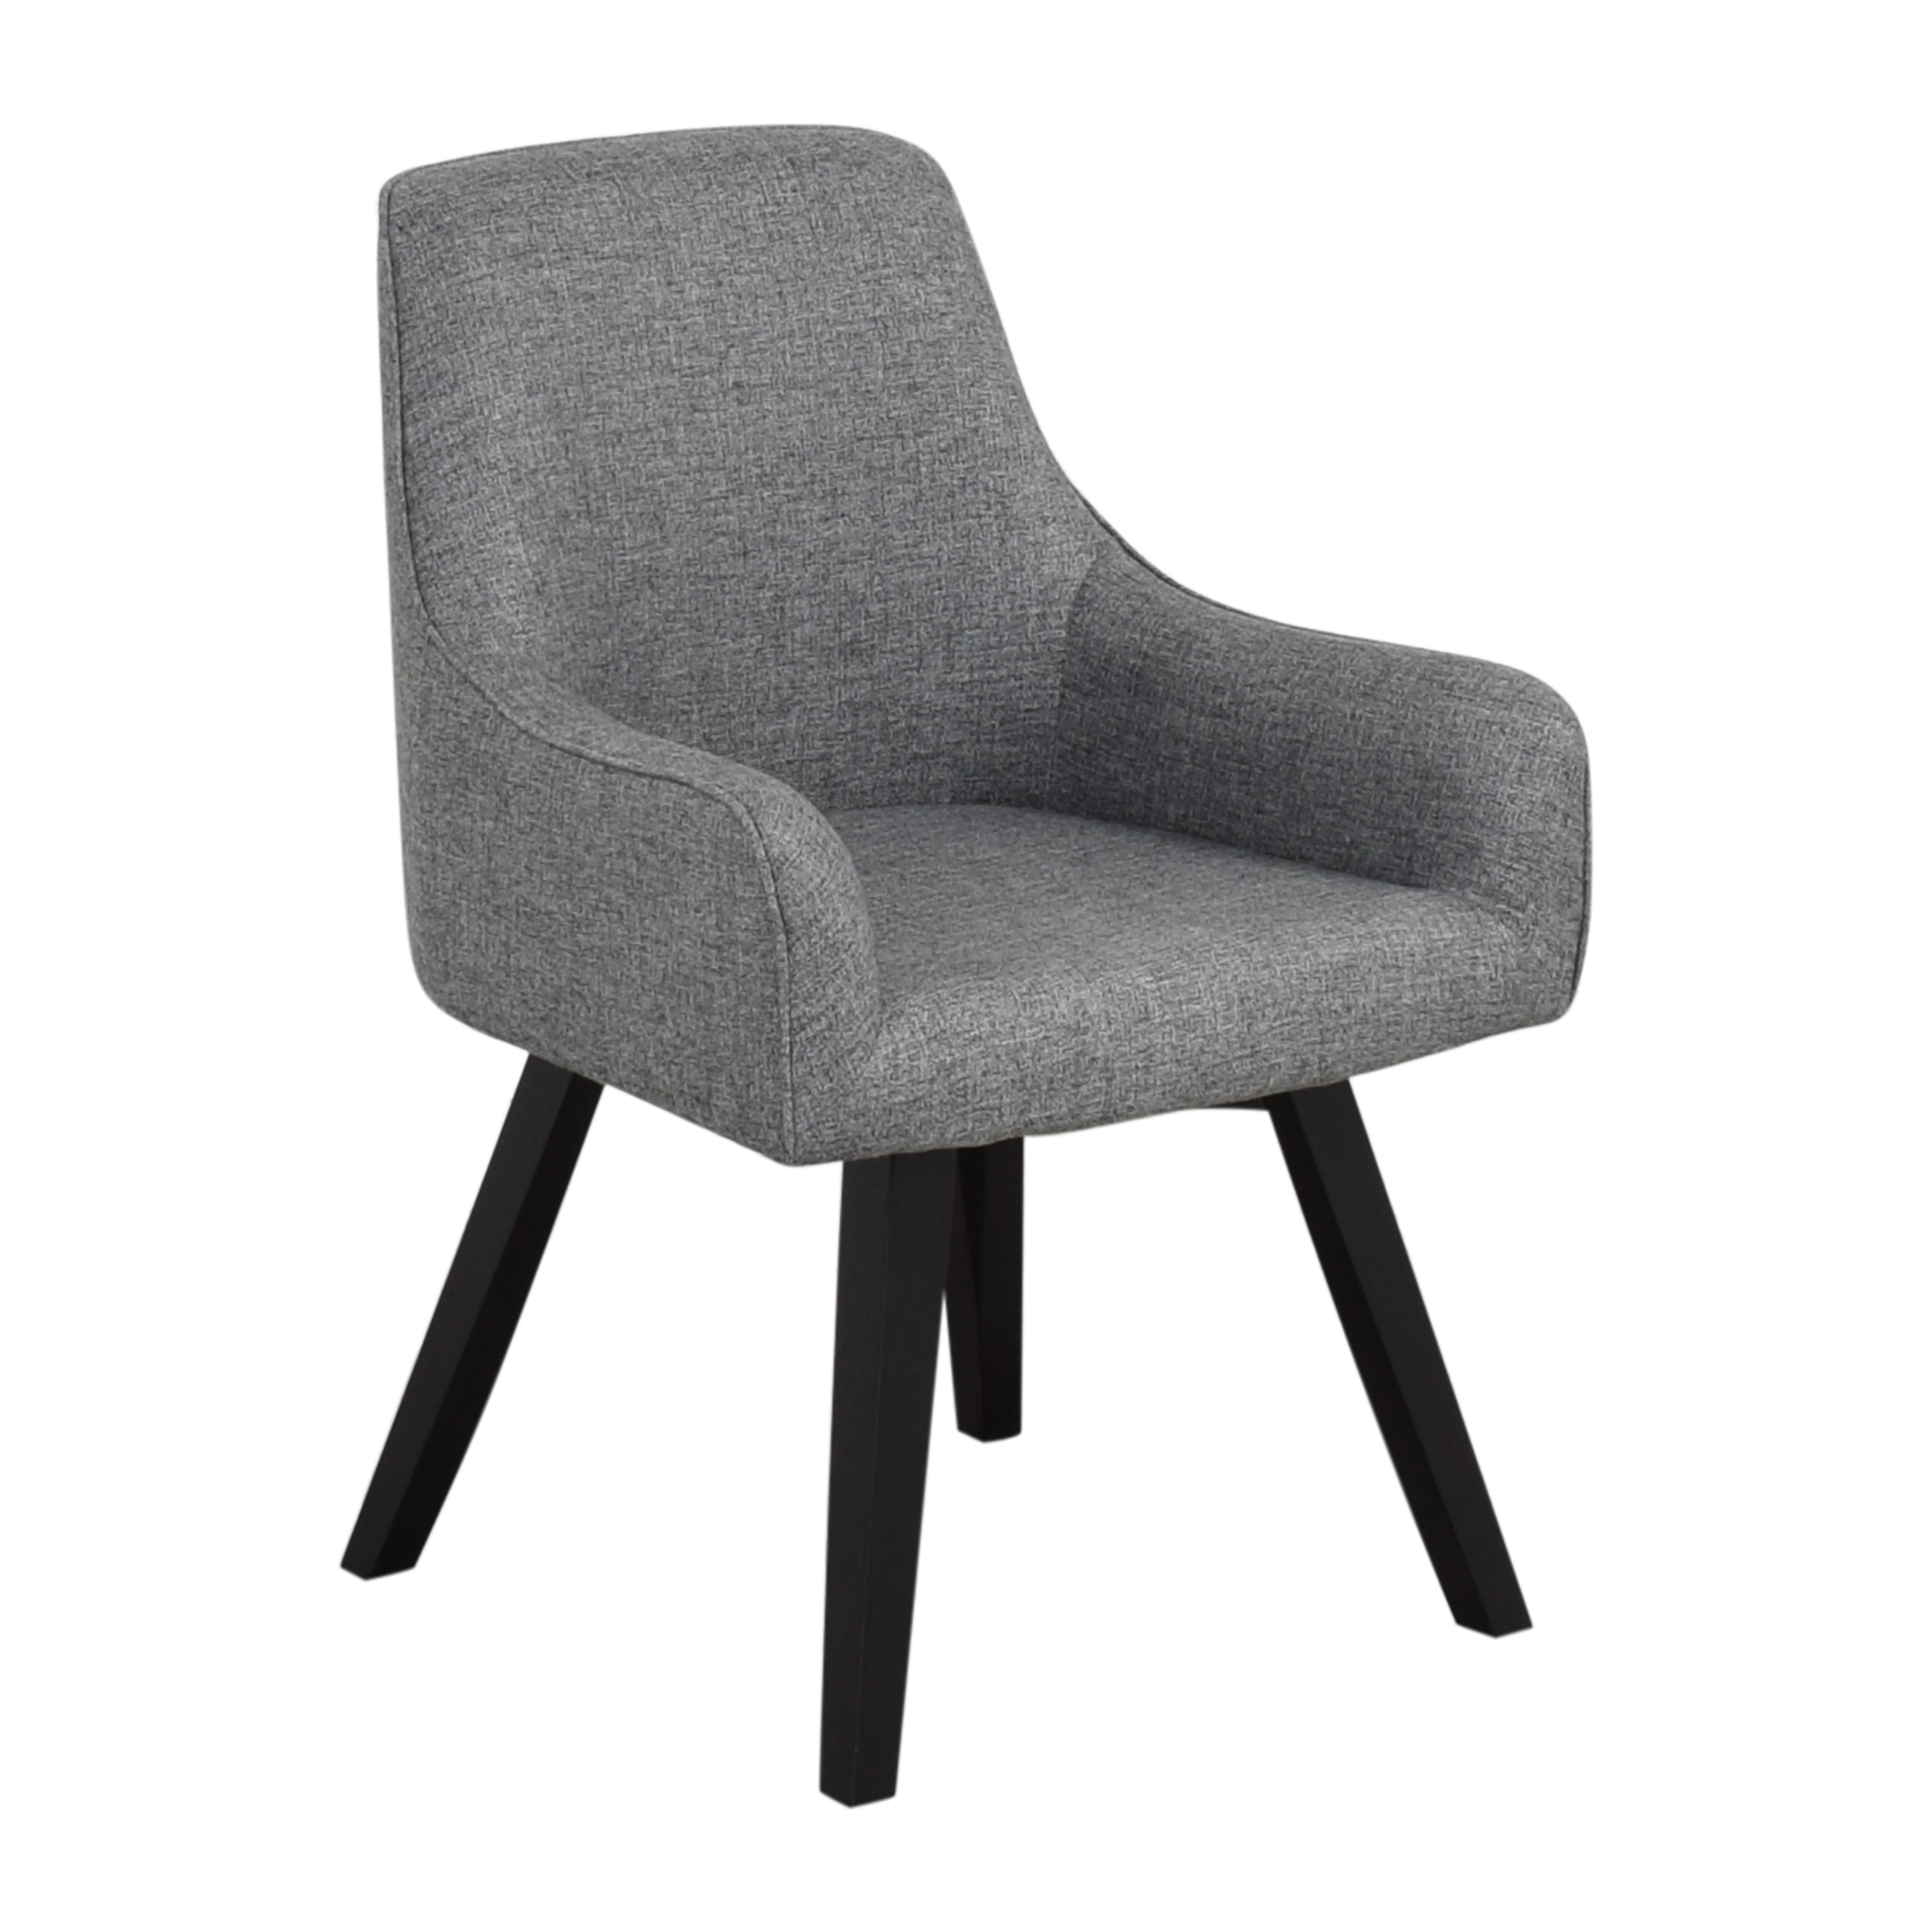 Crate & Barrel Crate & Barrel Harvey Black Chair Accent Chairs